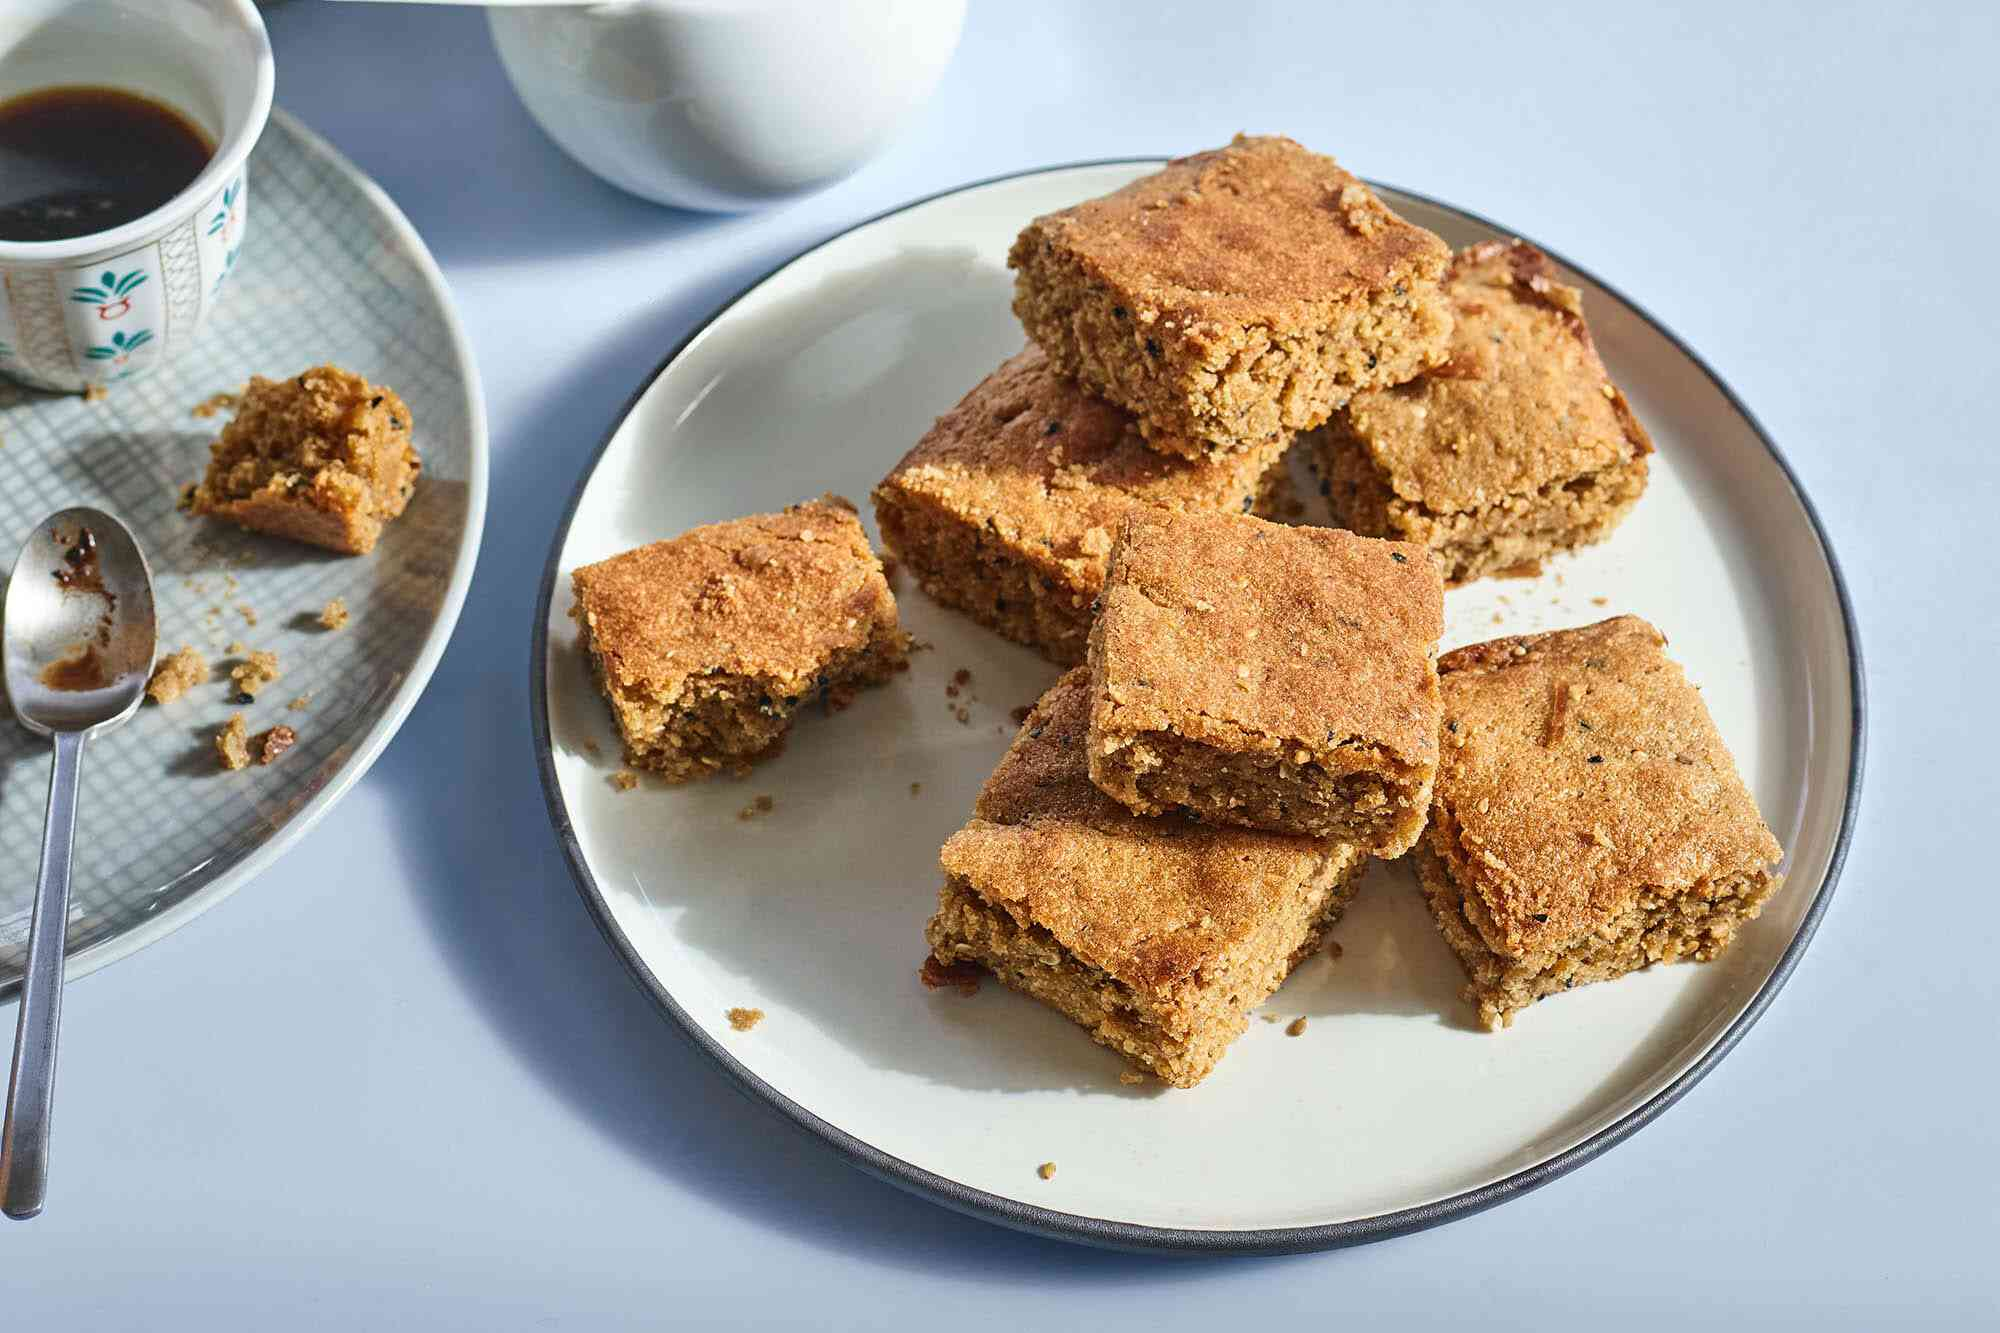 White plate with a stack of square cute chewy tahini blondies on it against a bluish grey background. A cup of coffee with a partially eaten blondie is nearby.